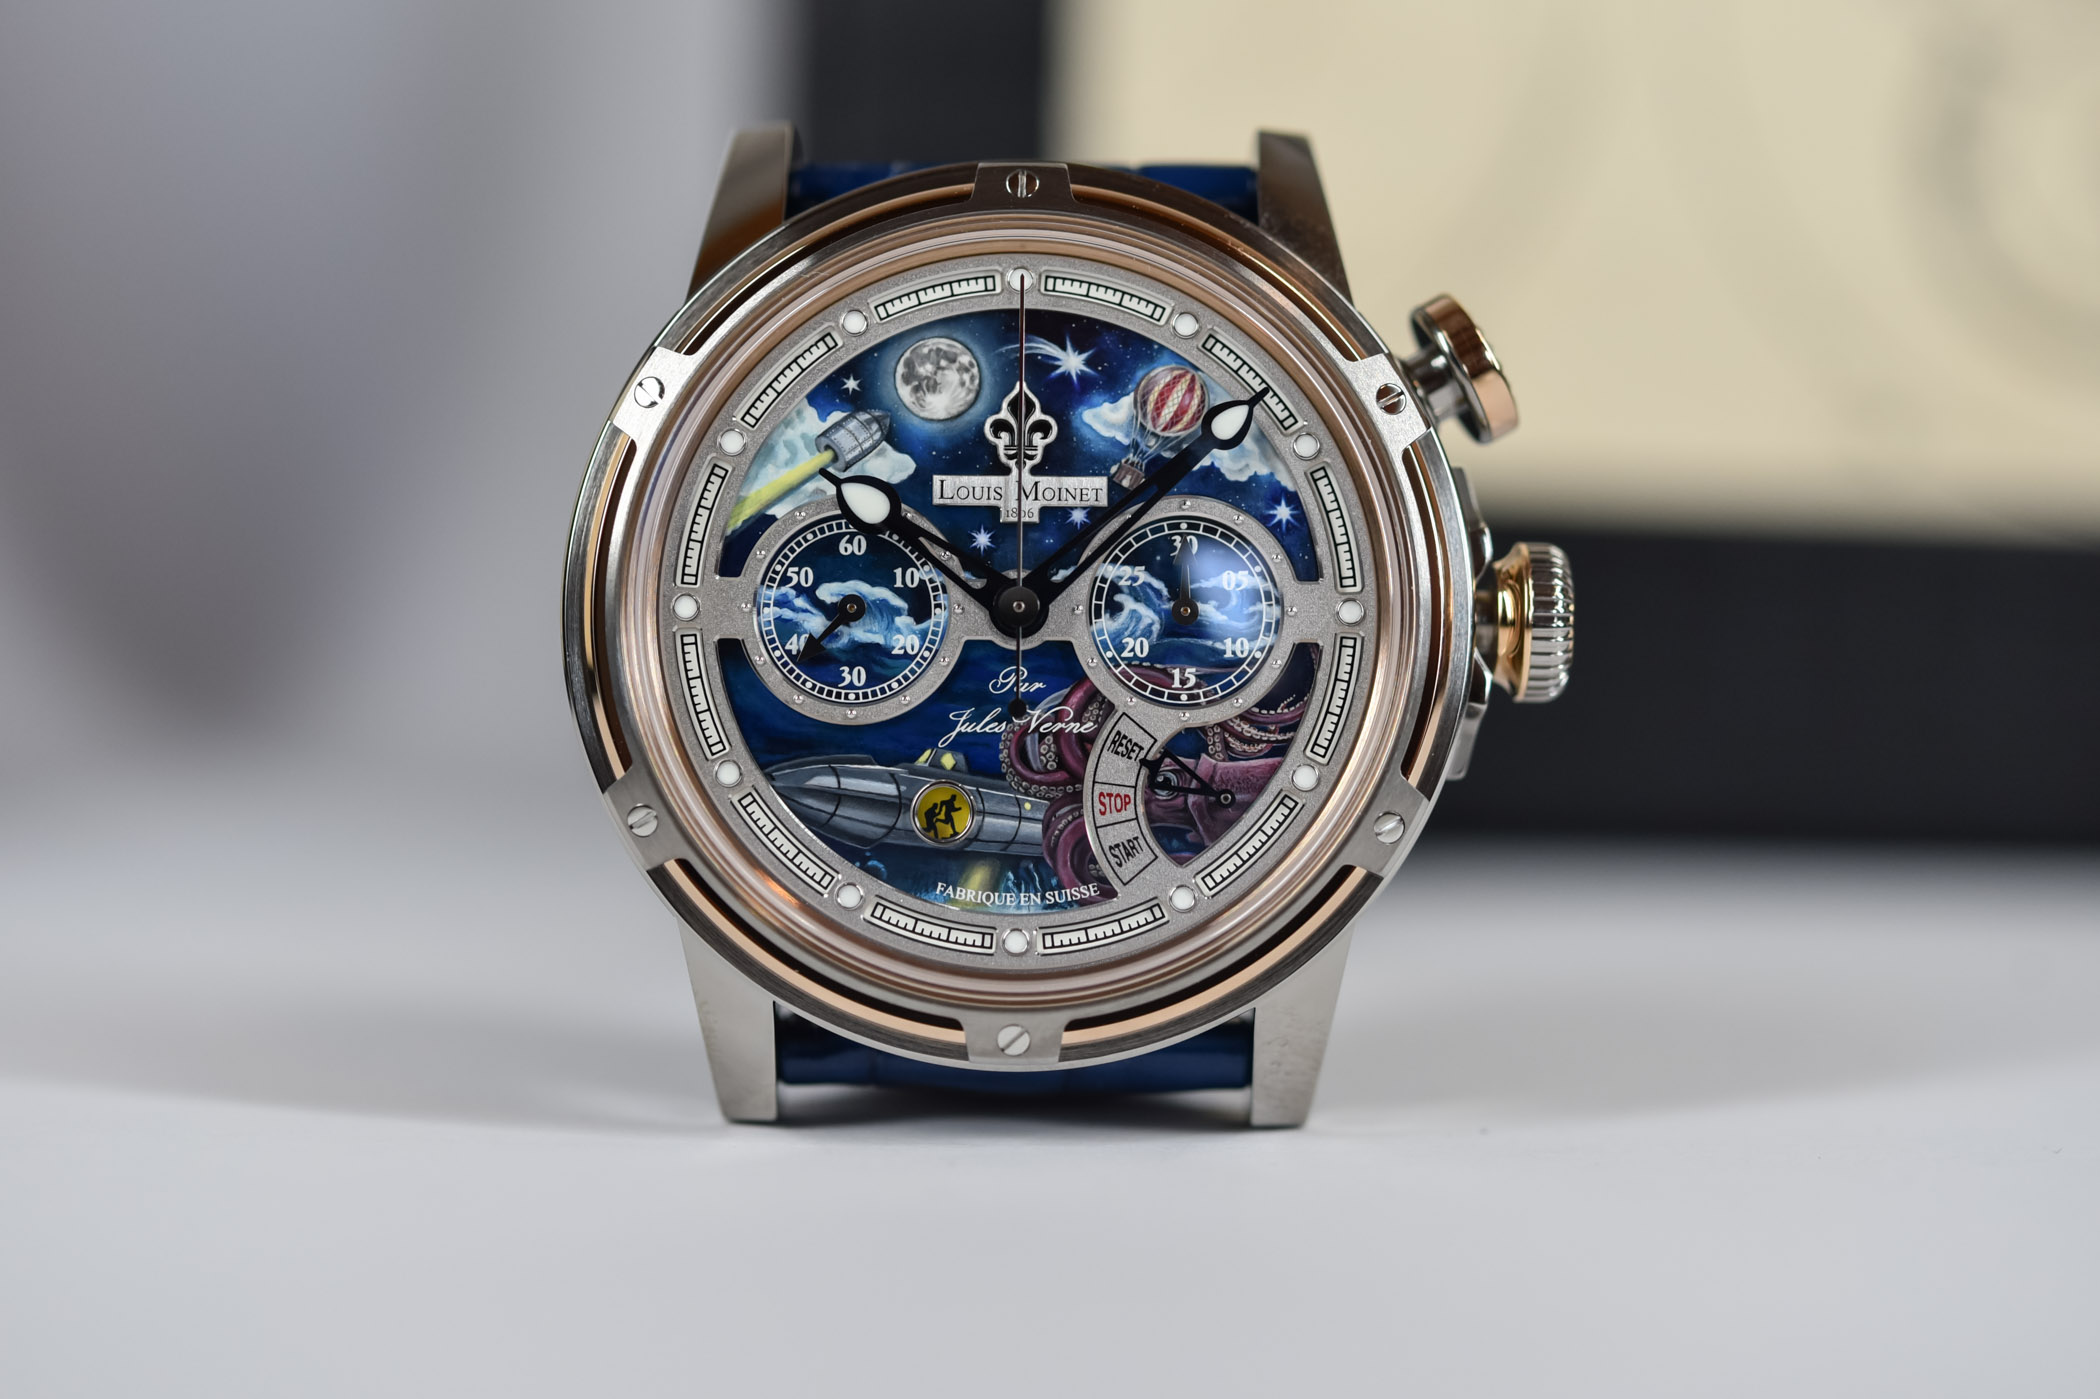 Louis Moinet Spirit of Jules Verne